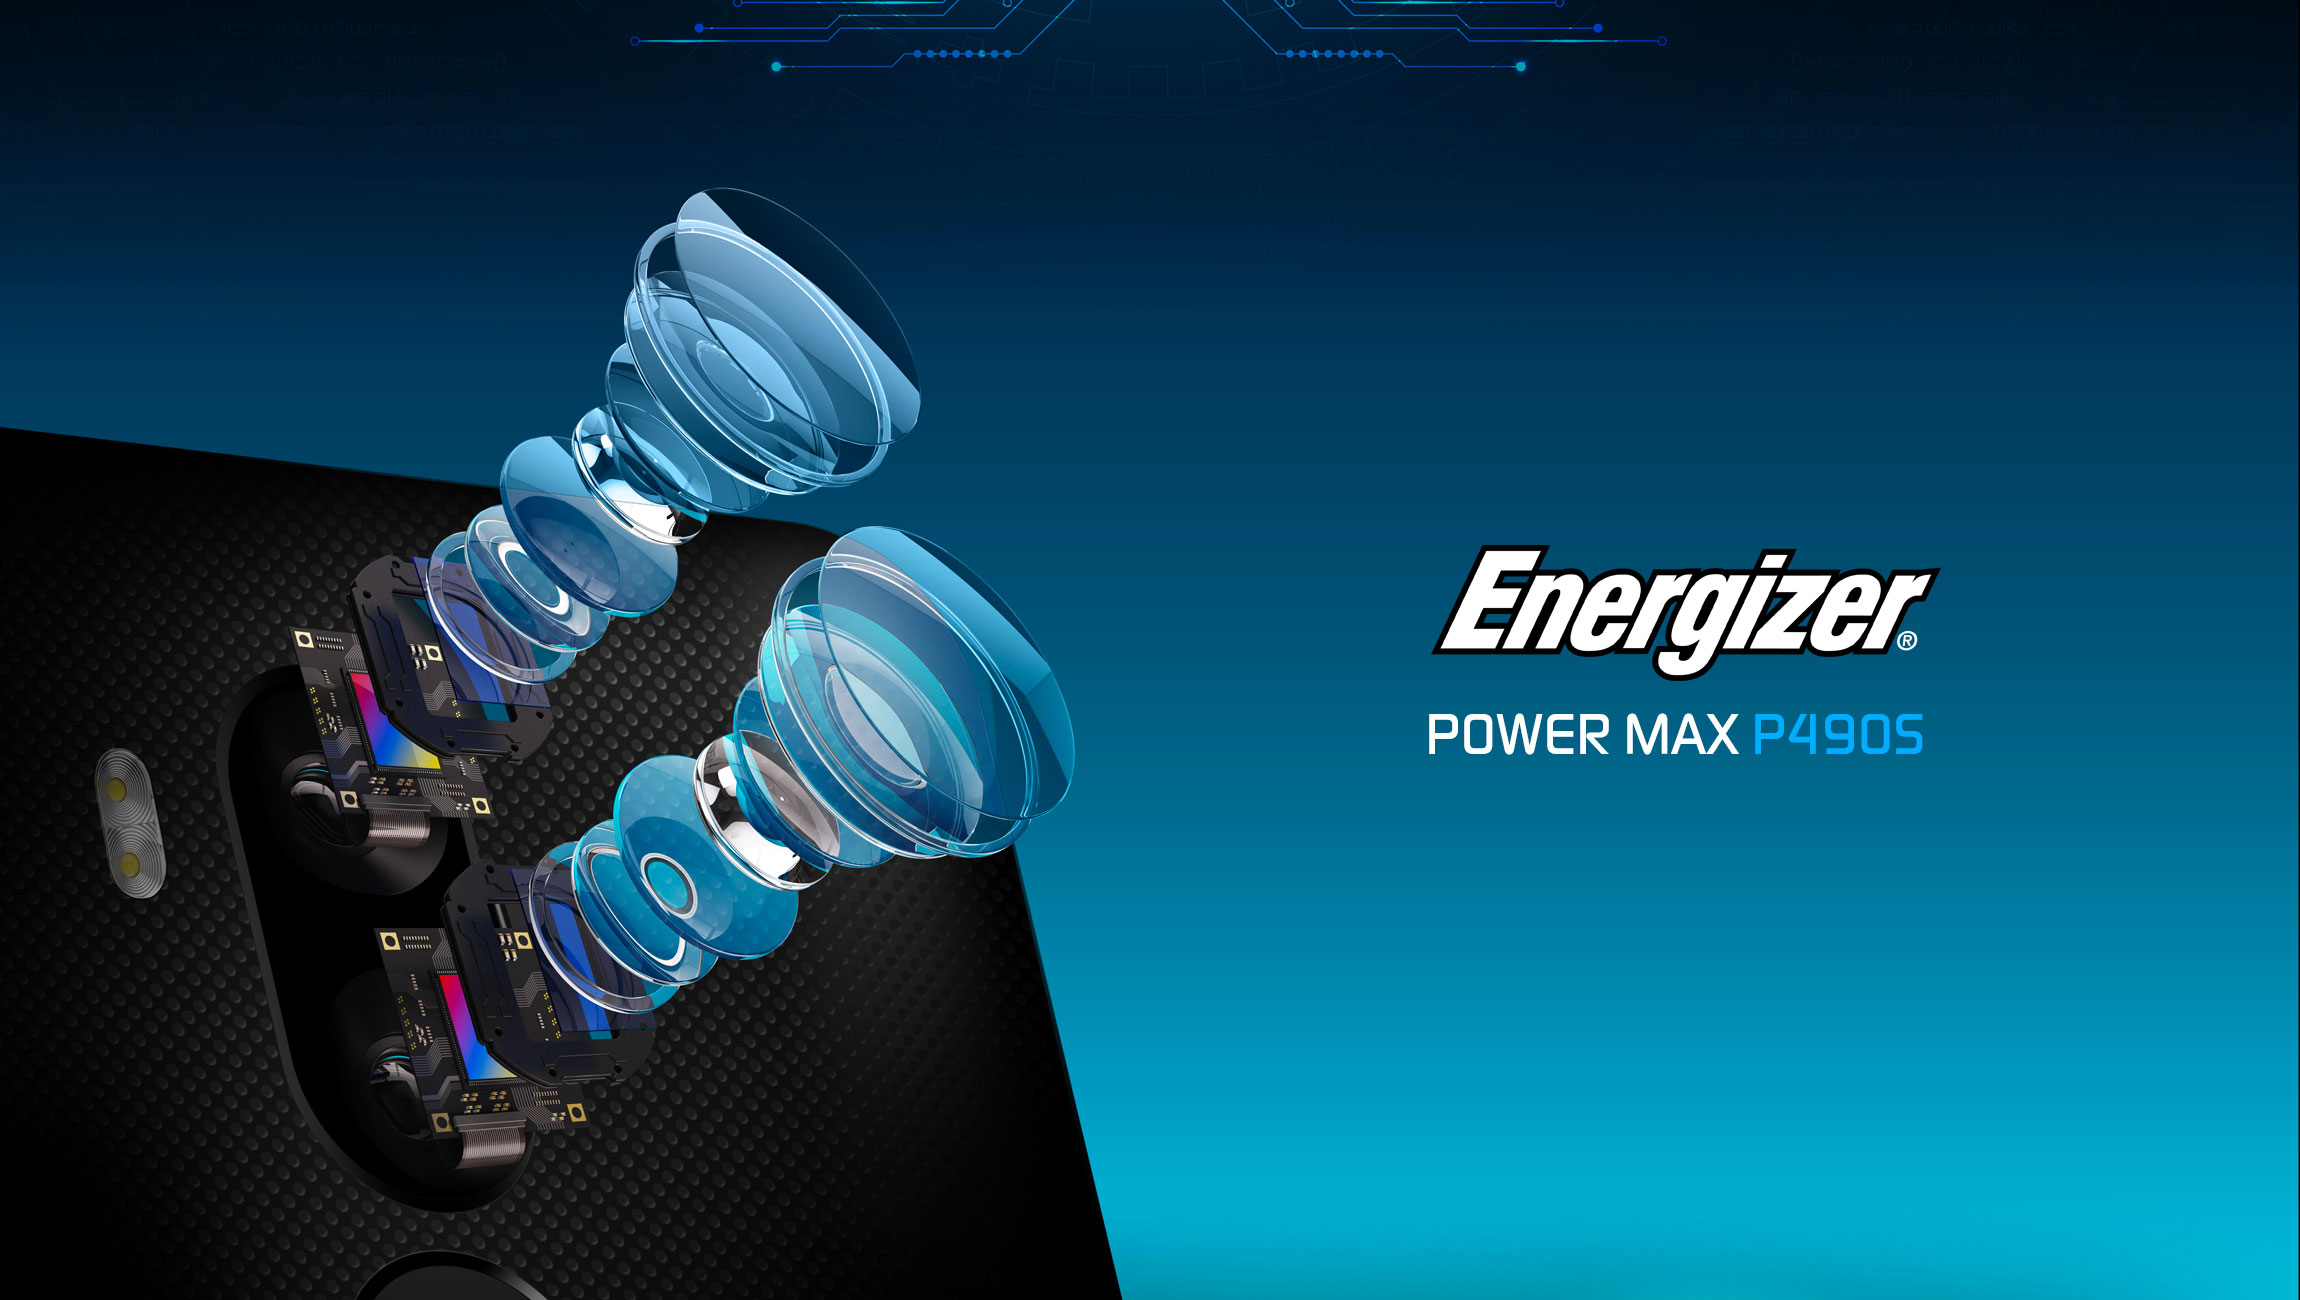 The Energizer Power Max P490S 4G smartphone features 4 cameras